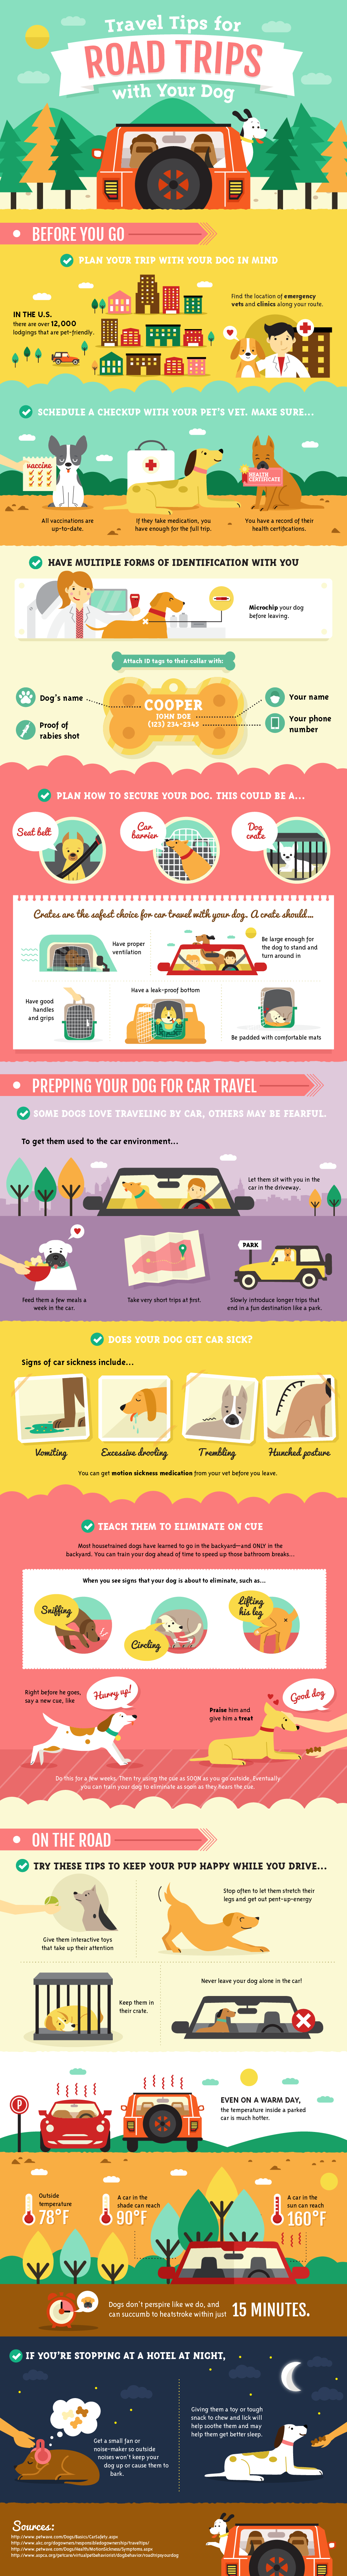 Travel Tips for Road Trips with Your Dog. An infographic by Amber Kingsley.